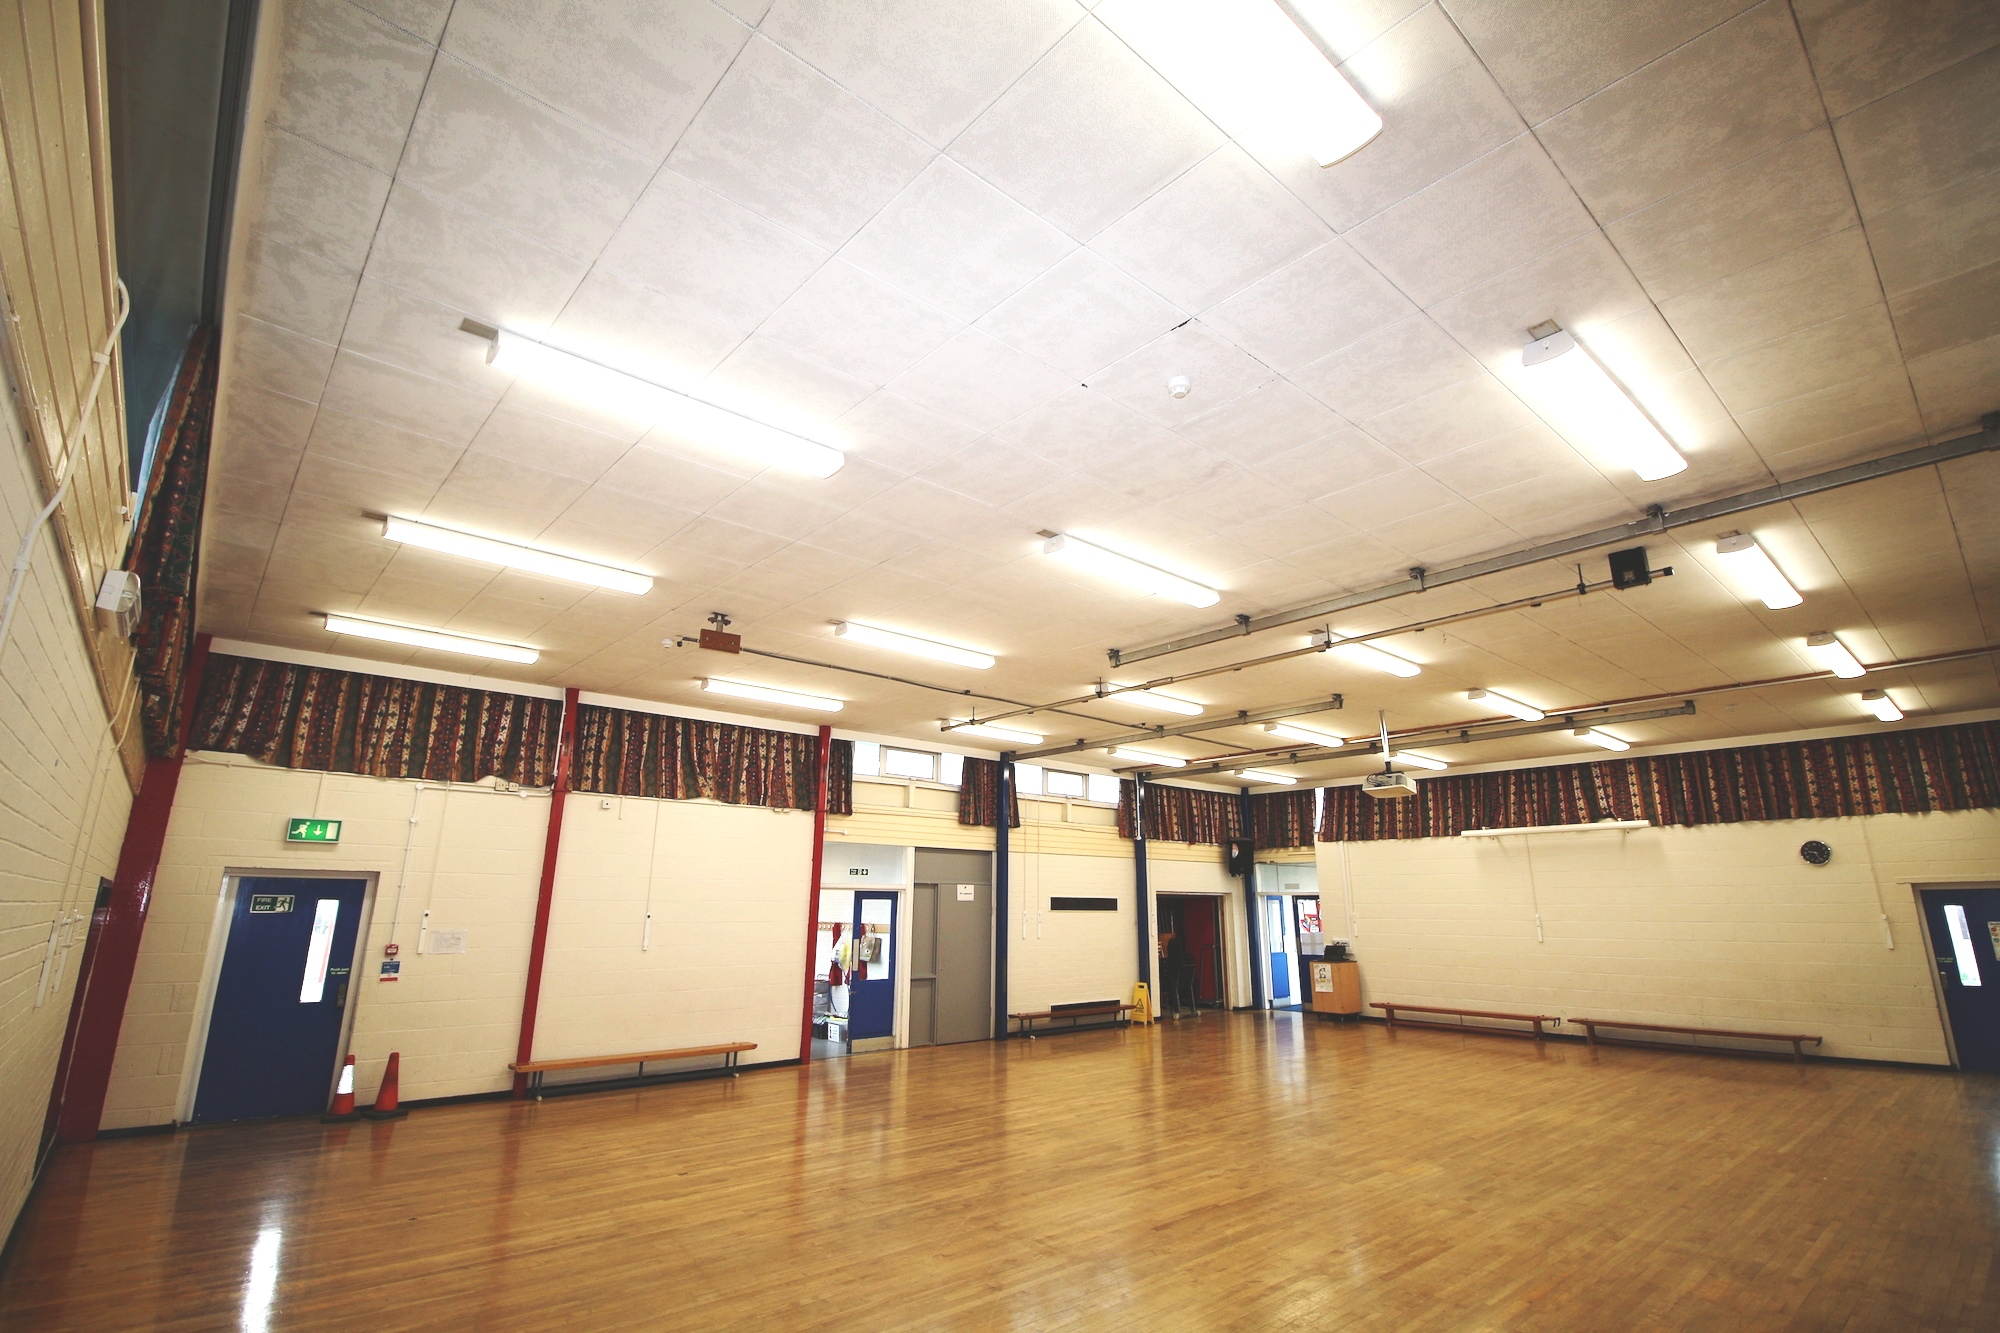 School Hall light quality significantly improved